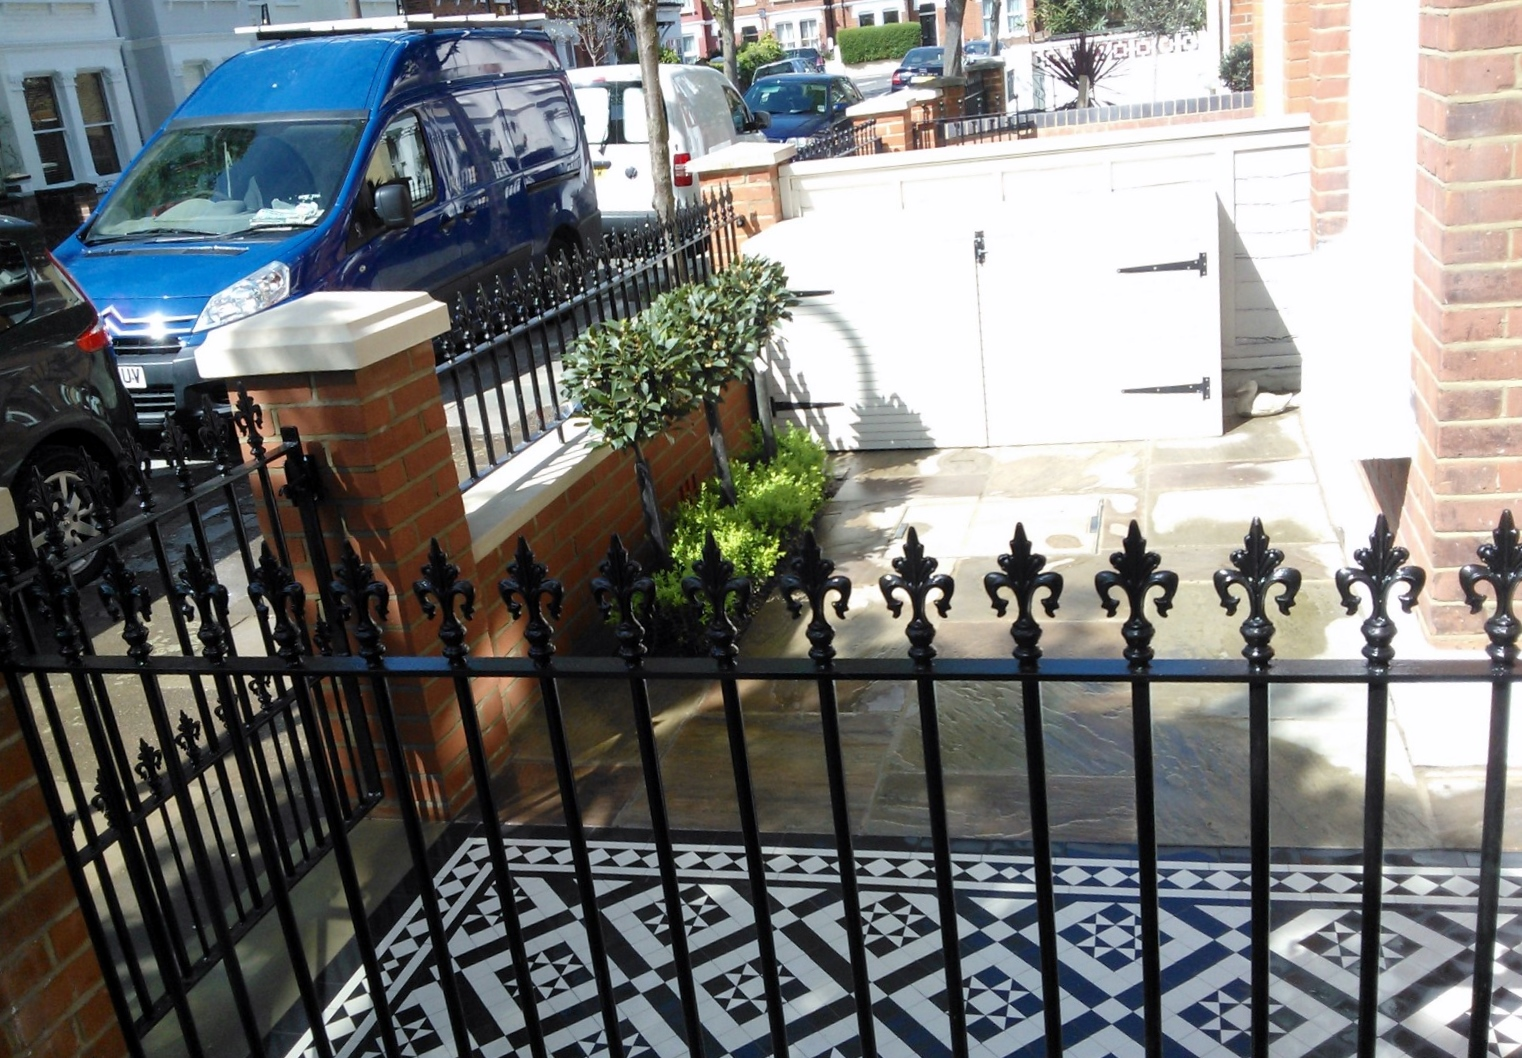 Black And White Victorian Mosaic Tile Path Red Brick Garden Wall Wrought Iron Rail And Gate